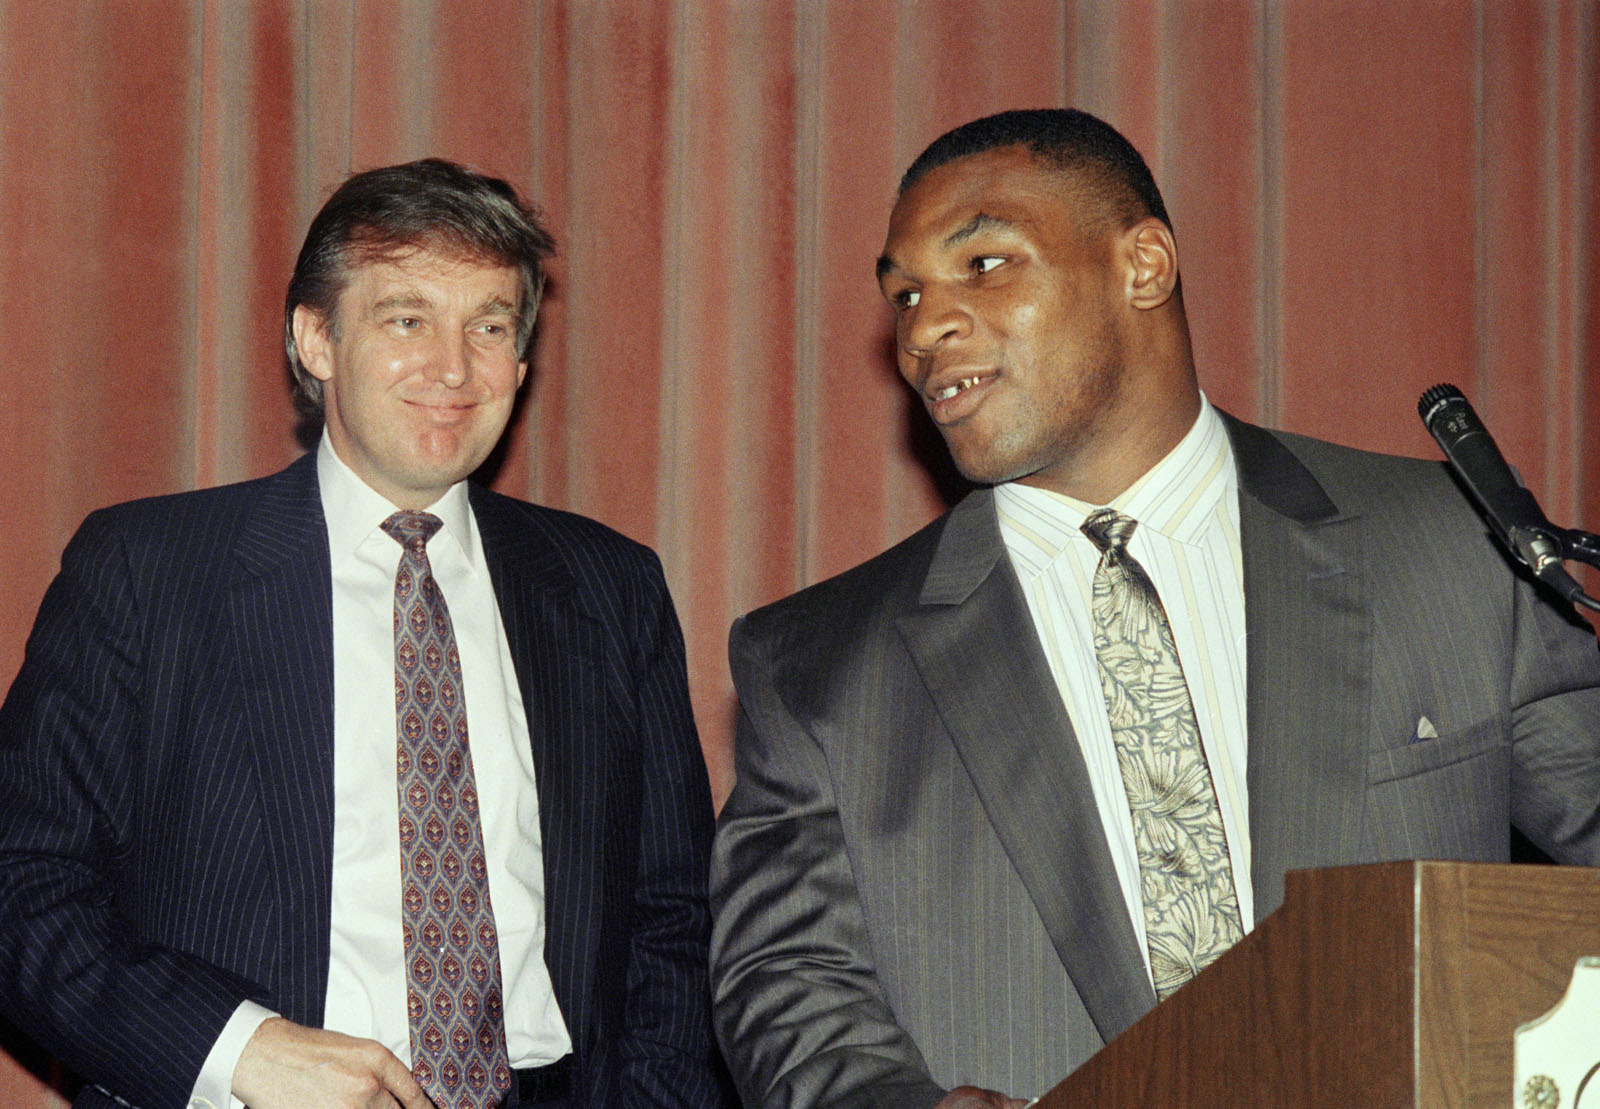 Heavyweight champion Mike Tyson, right, speak at a news conference while advisor Donald Trump looks in New York, Tuesday, July 27, 1988 after announcing a settlement between Tyson and his manager, Bill Cayton. Tyson, who had sued to break his contract with Cayton, reached an ou-of-court settlement under which Cayton will remain his manager until Feb. 11, 1992. (AP Photo/Richard Drew)